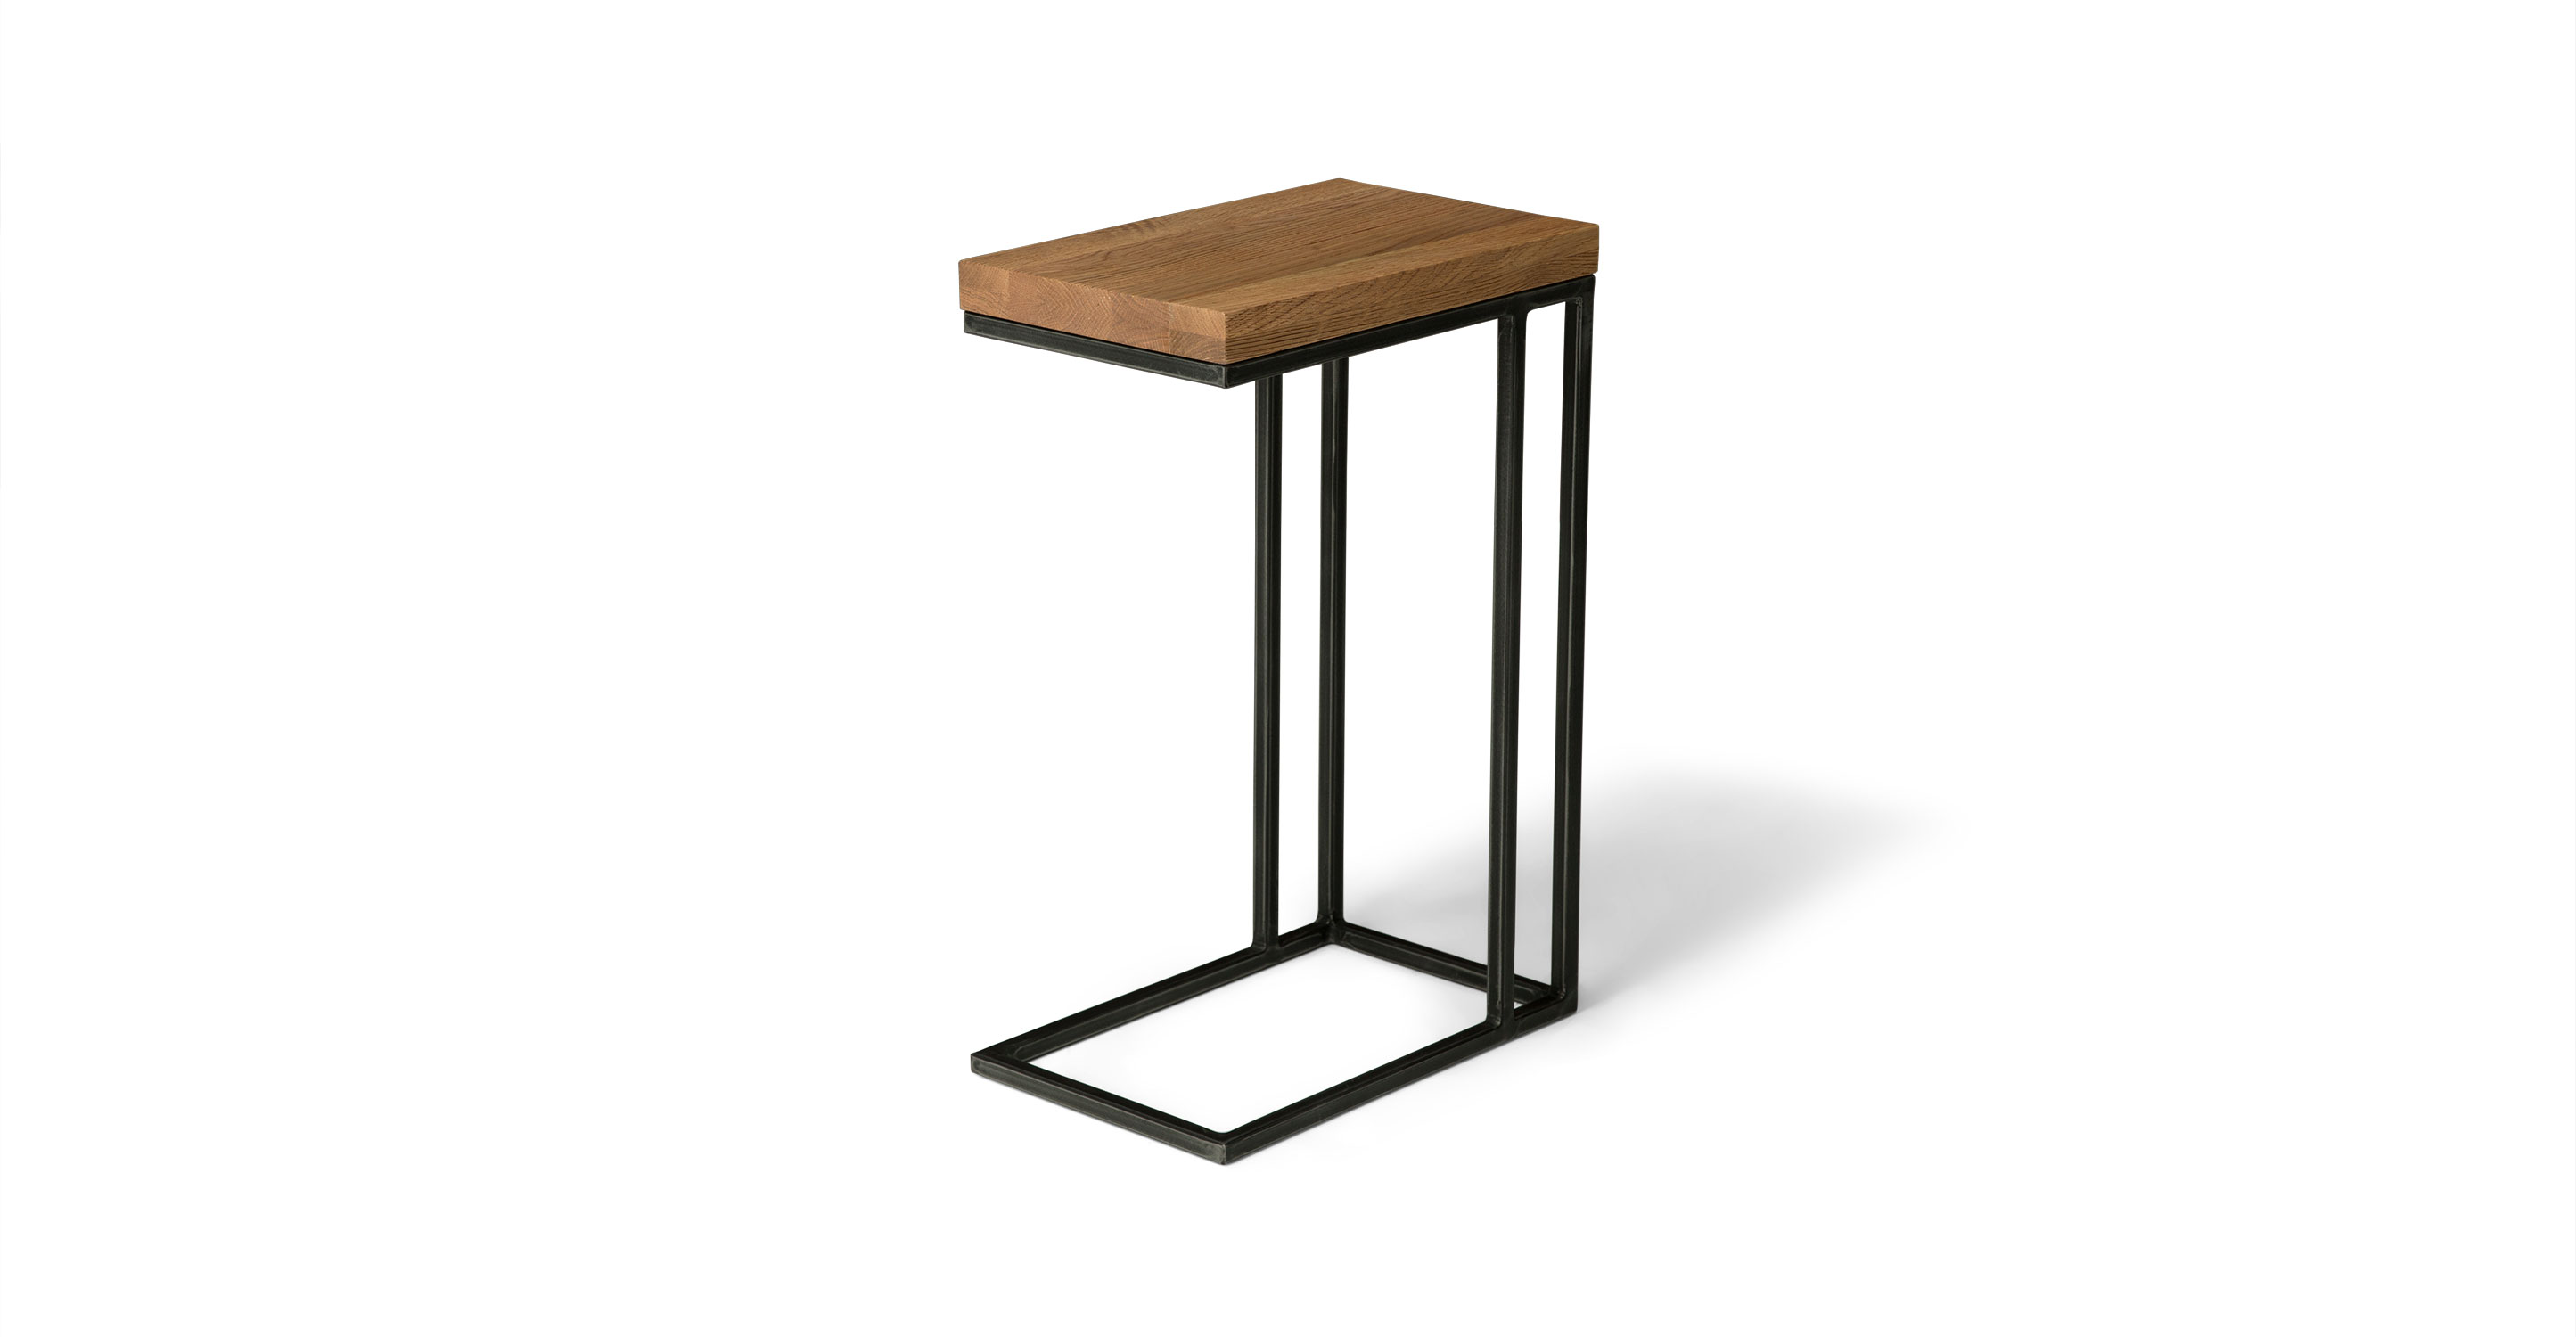 Bedroom Storage Furniture Taiga Side Table Coffee Tables Article Modern Mid